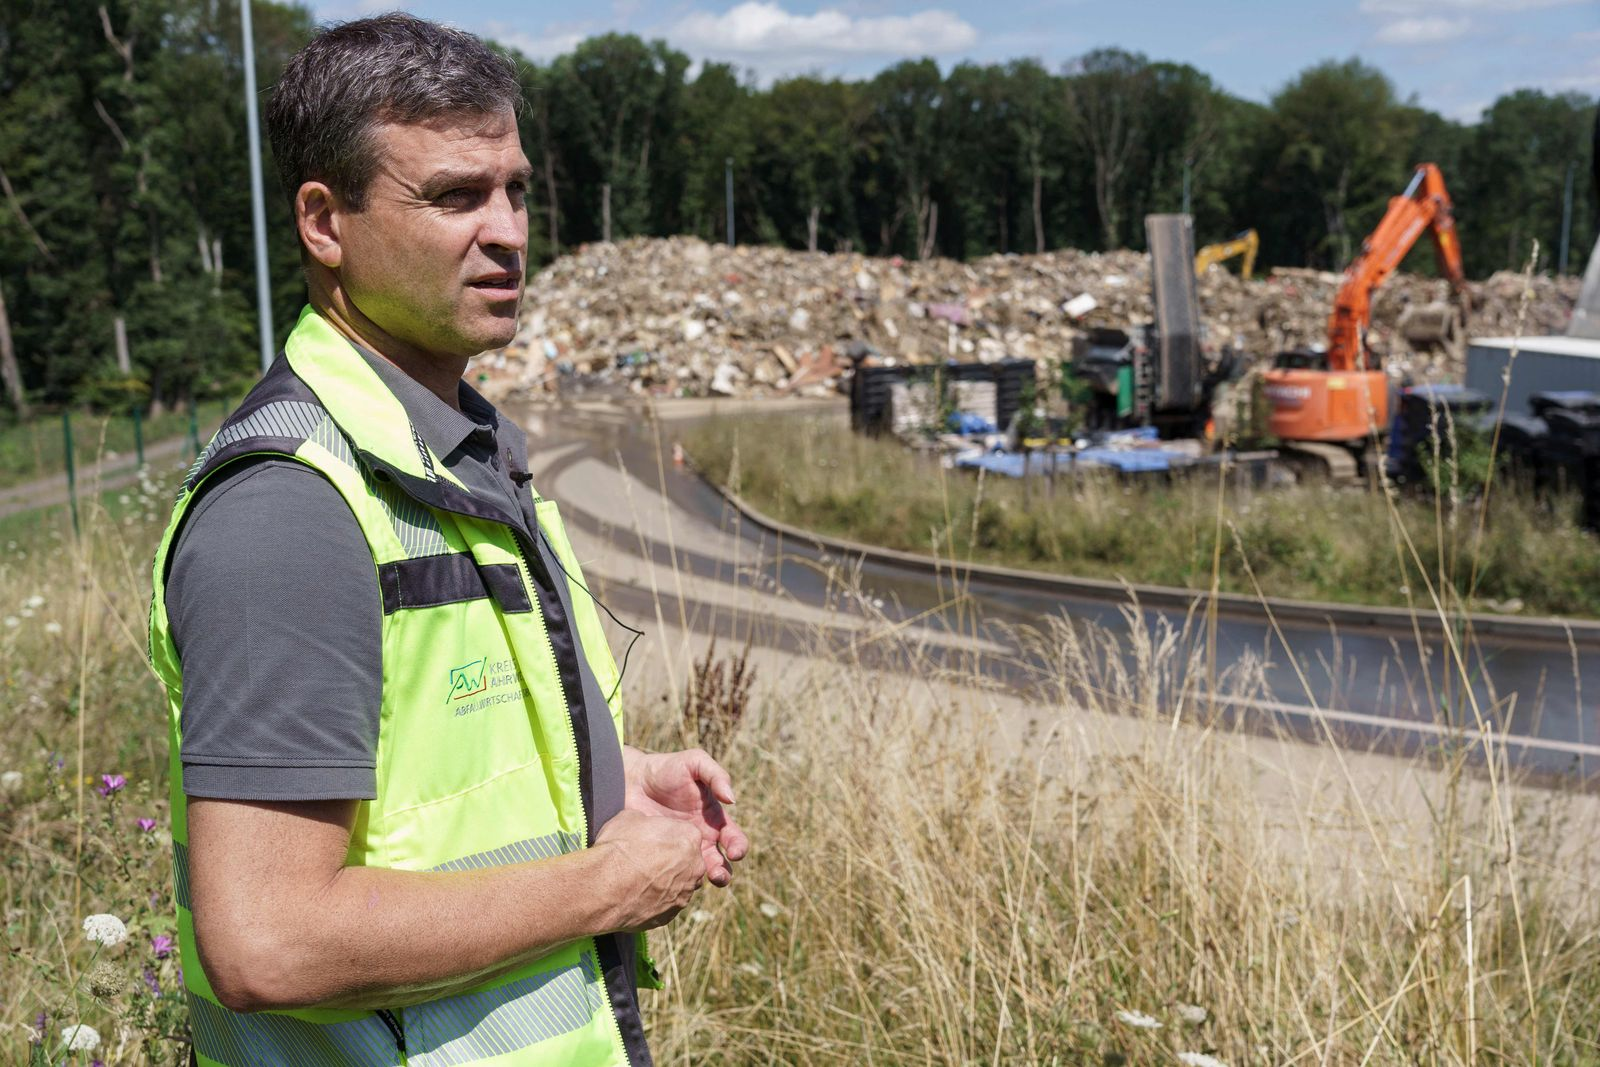 GERMANY-FLOOD-WASTE-ENVIRONMENT